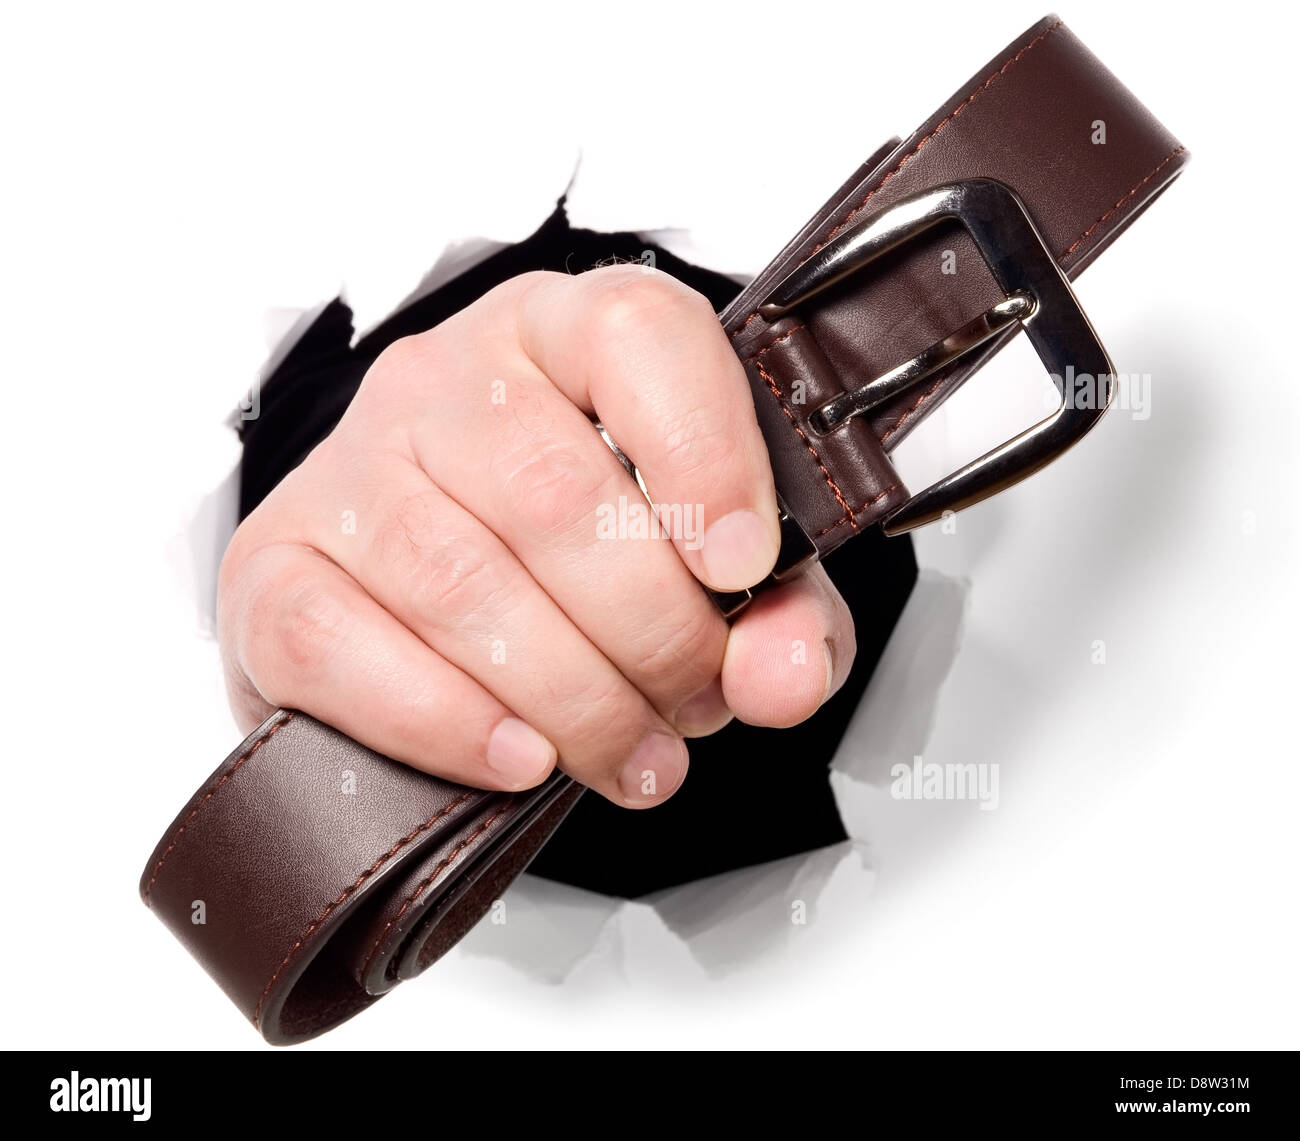 Man is holding belt through a hole in white paper - Stock Image